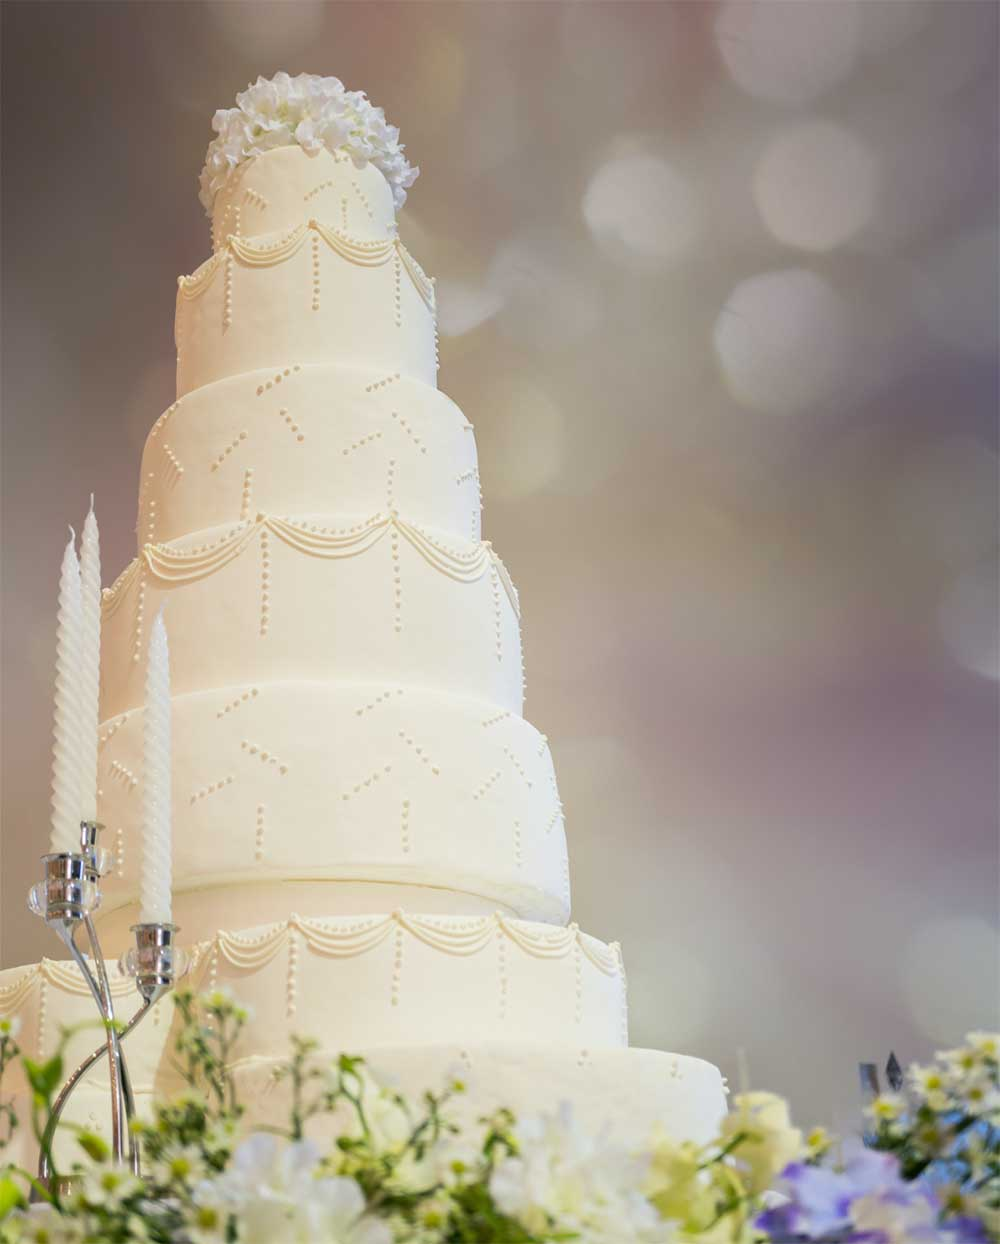 Four-tier wedding cake surrounded by flowers and candles, weddings in Huntsville